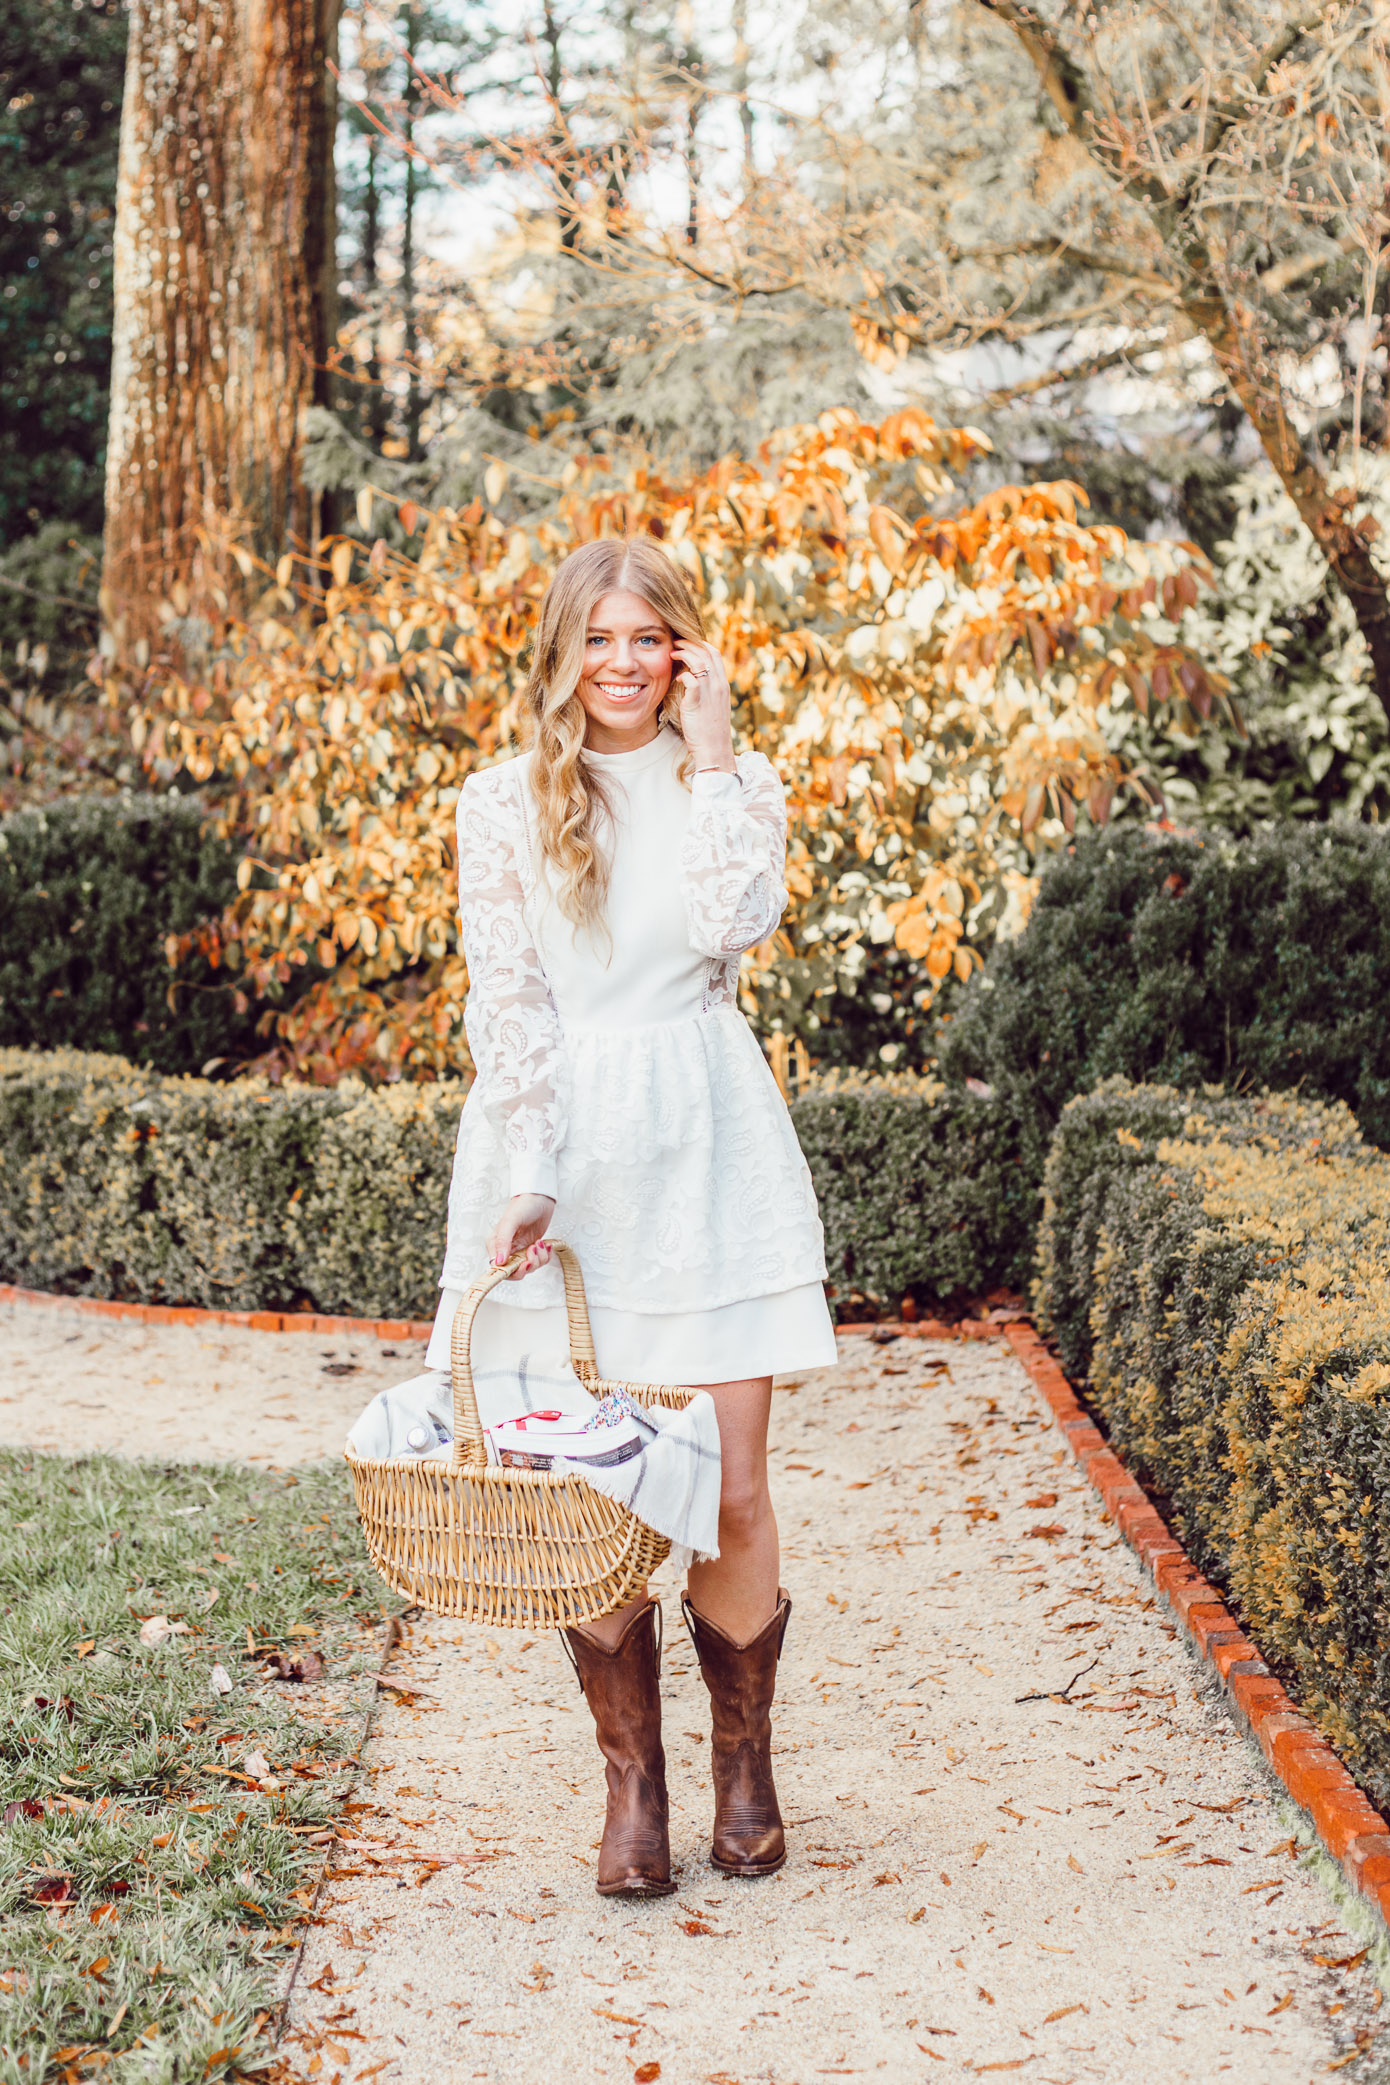 White Mini Dress   How To Celebrate Special Occasions the Right Way With The BEST Small Personal Wine Bottles- Louella Reese